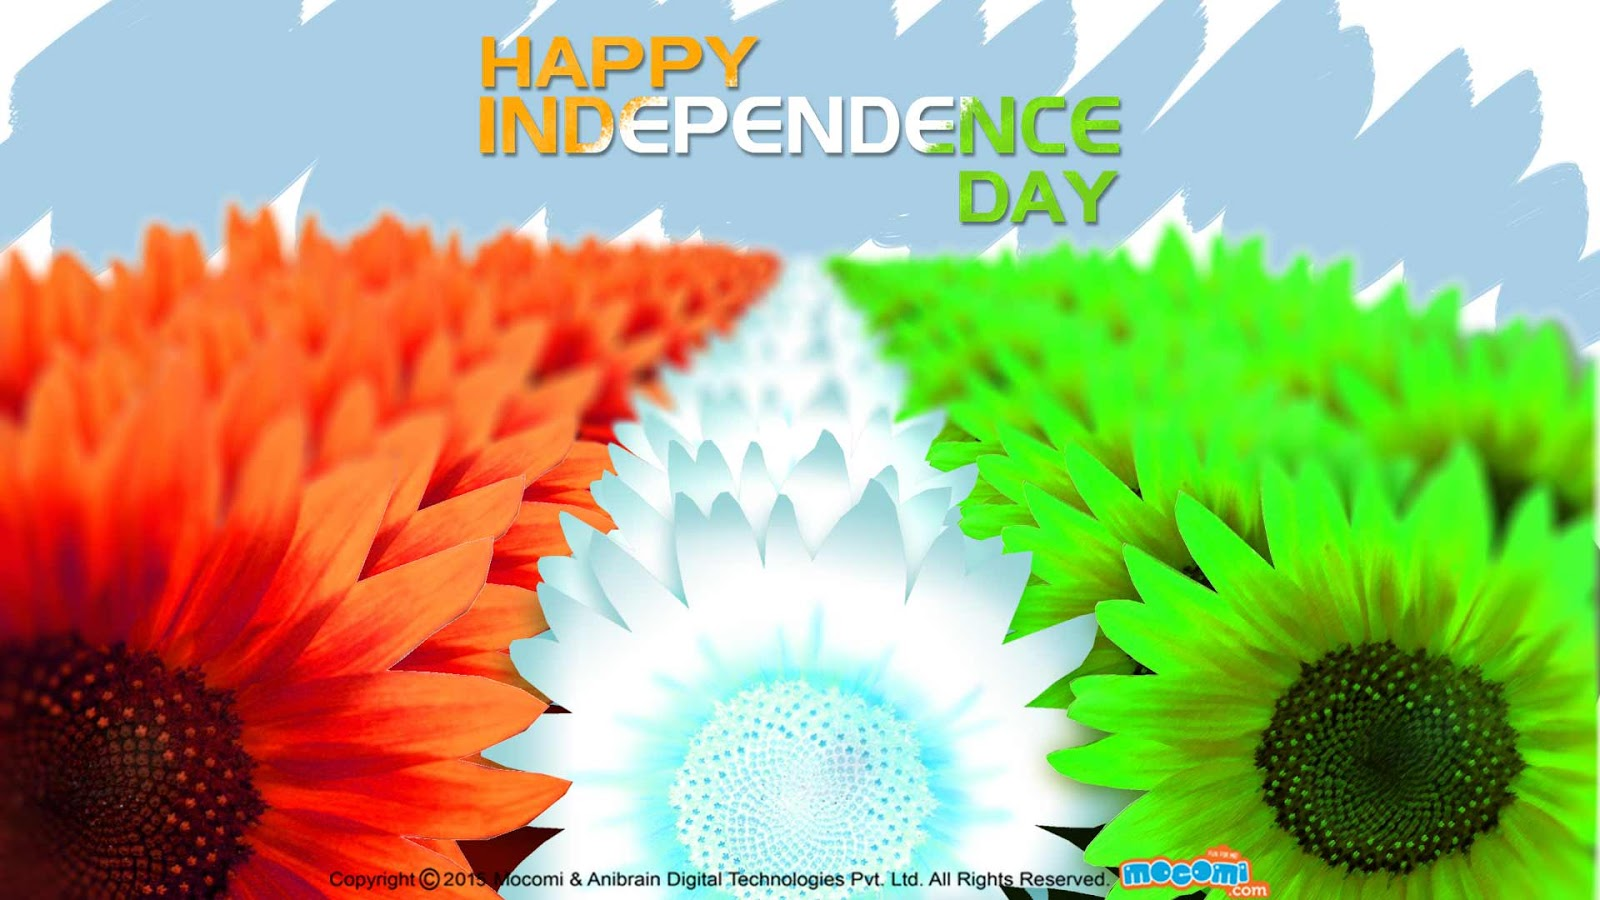 Day Happy Hd Indpeneence: Happy Independence Day HD Wallpapers, Images, Photos